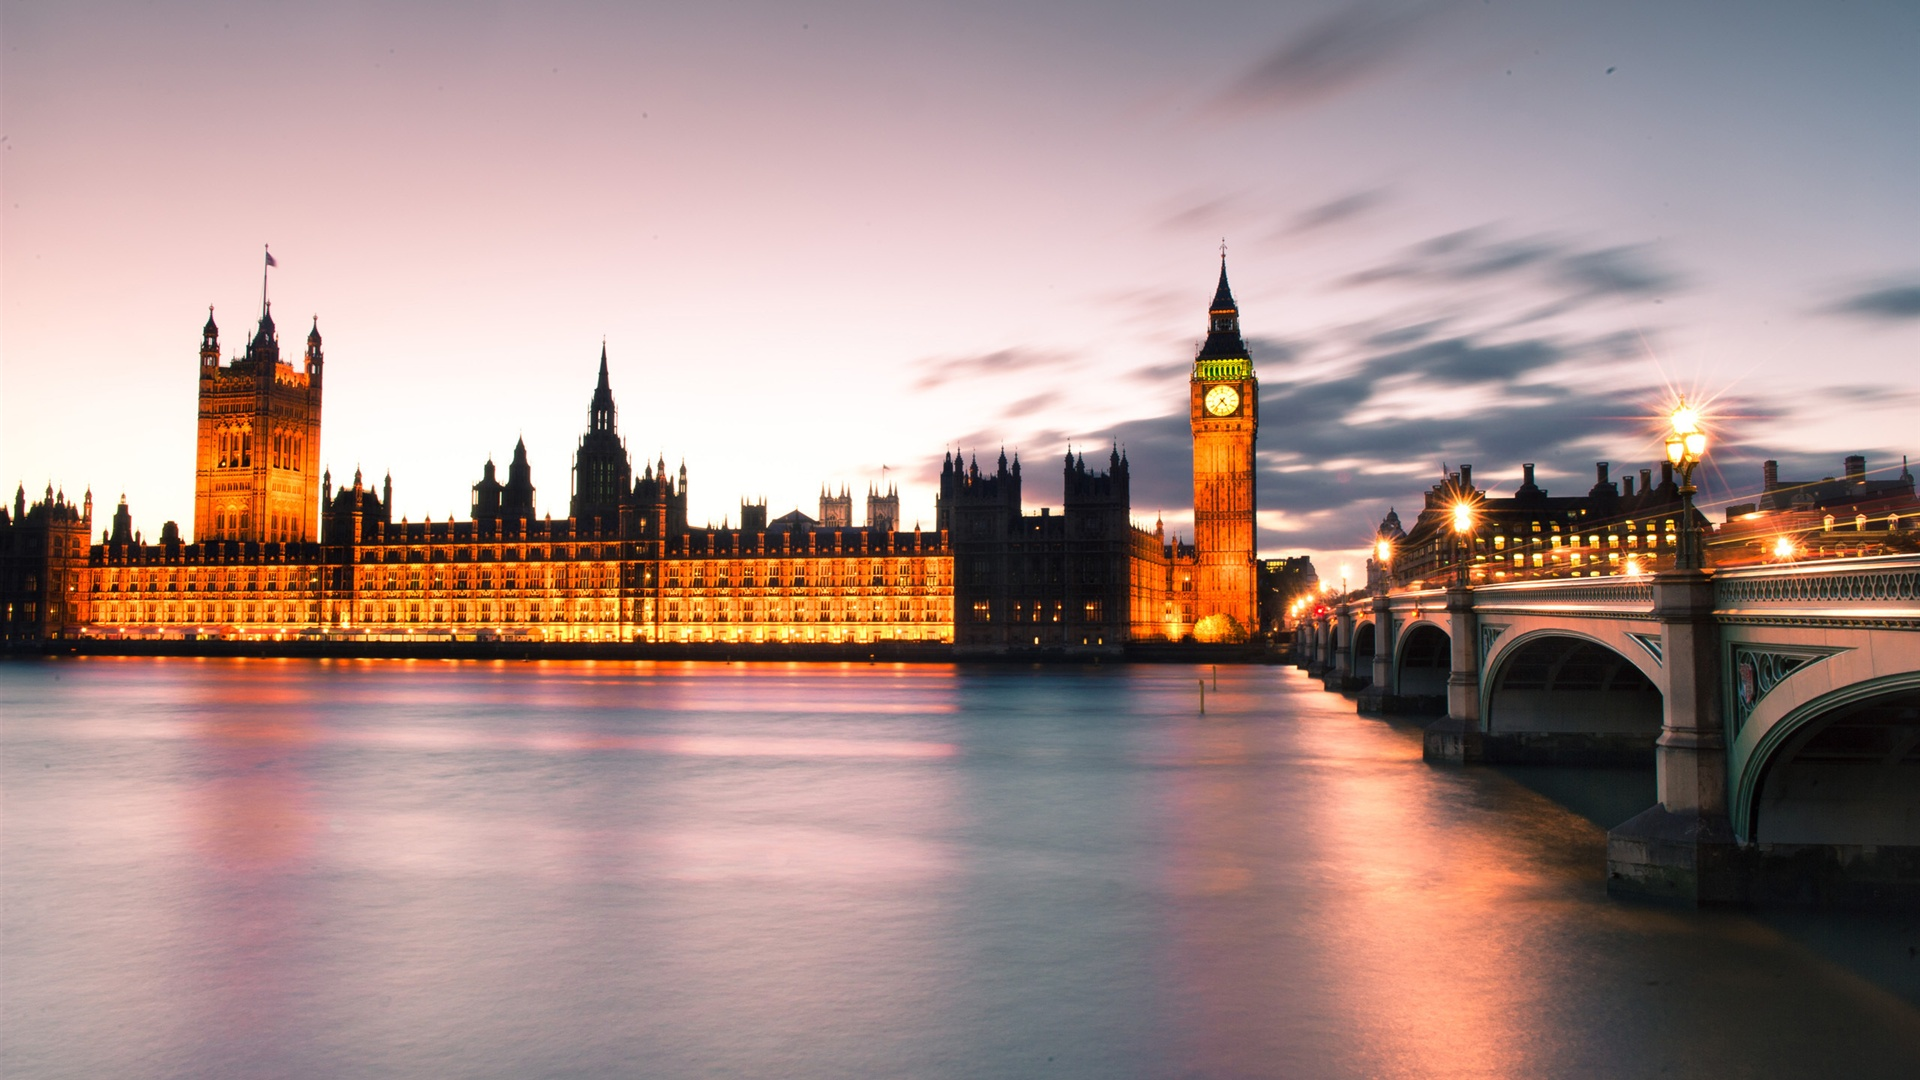 Download Wallpaper 1920x1080 United Kingdom London Full Hd